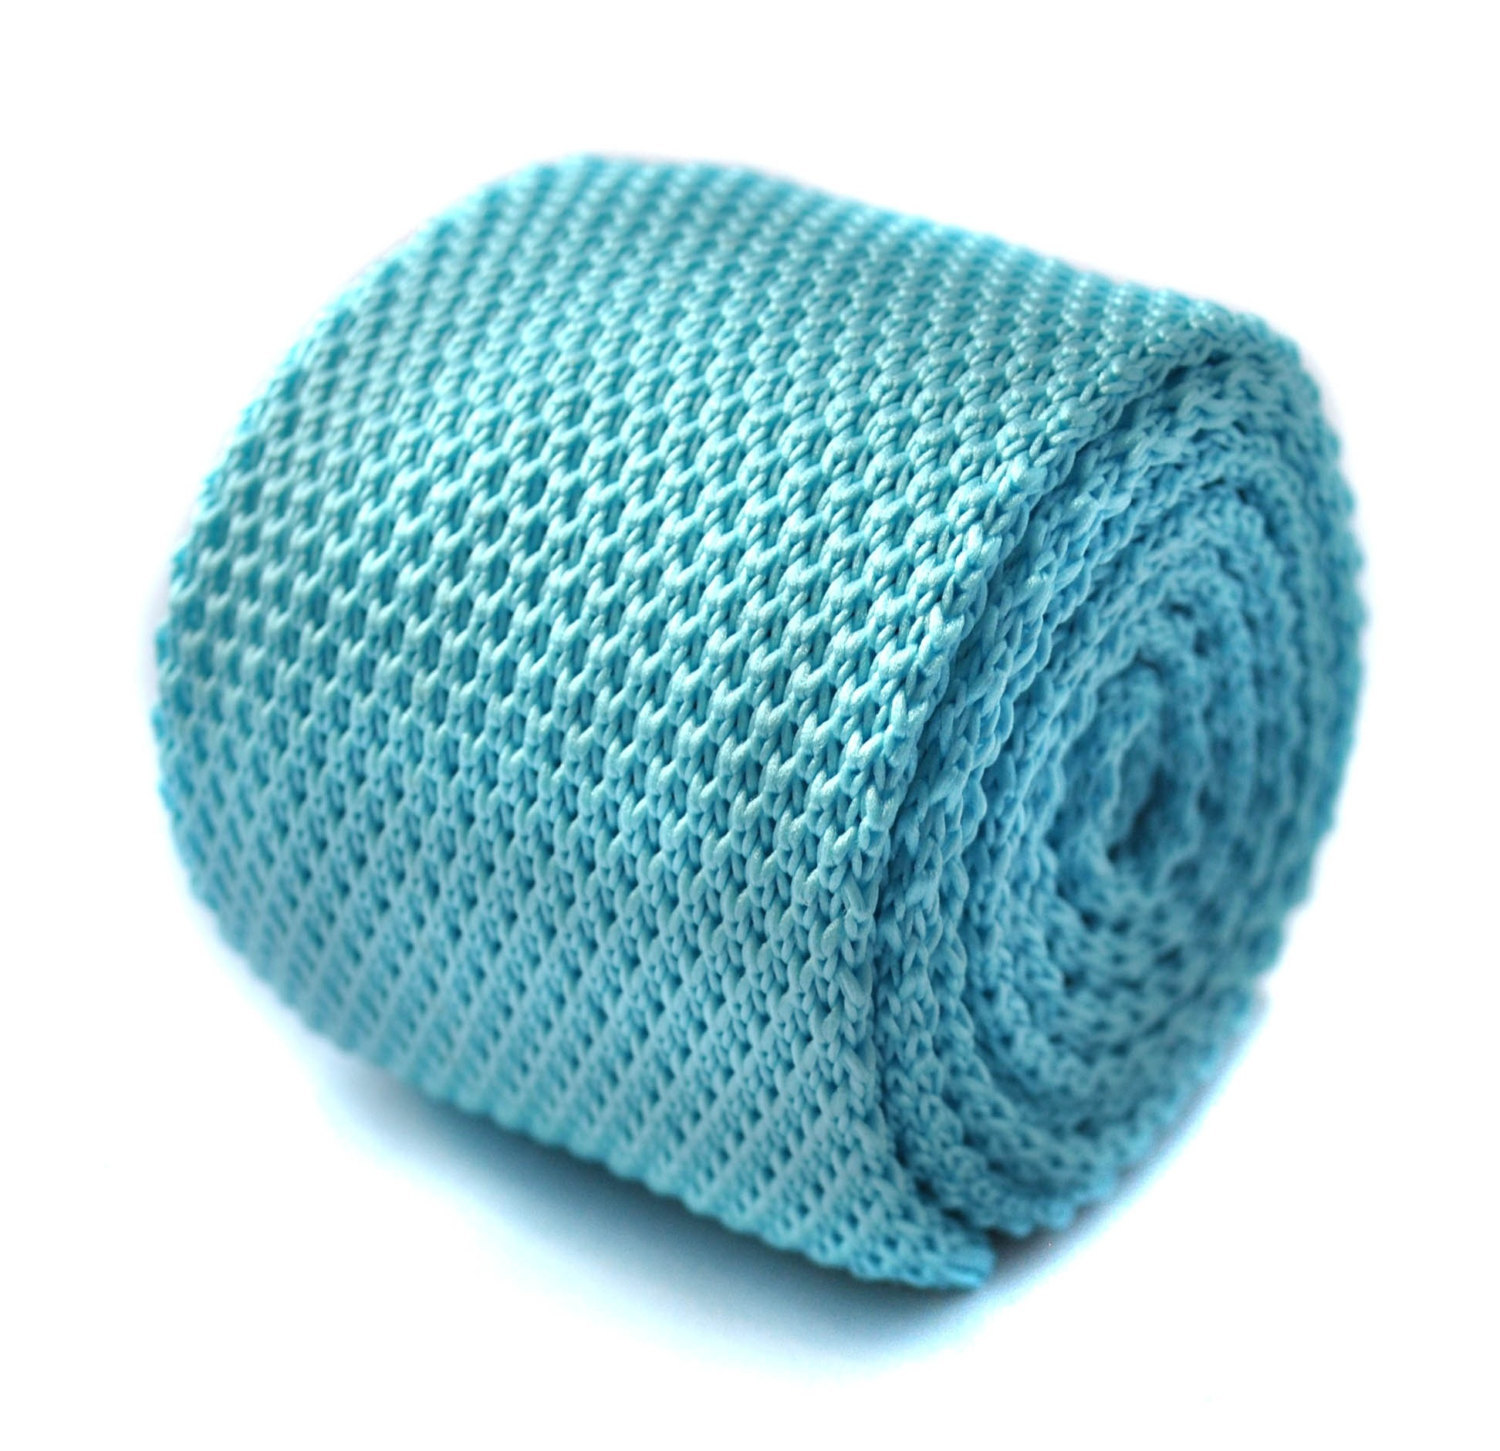 turquoise blue plain knitted skinny tie by Frederick Thomas FT293